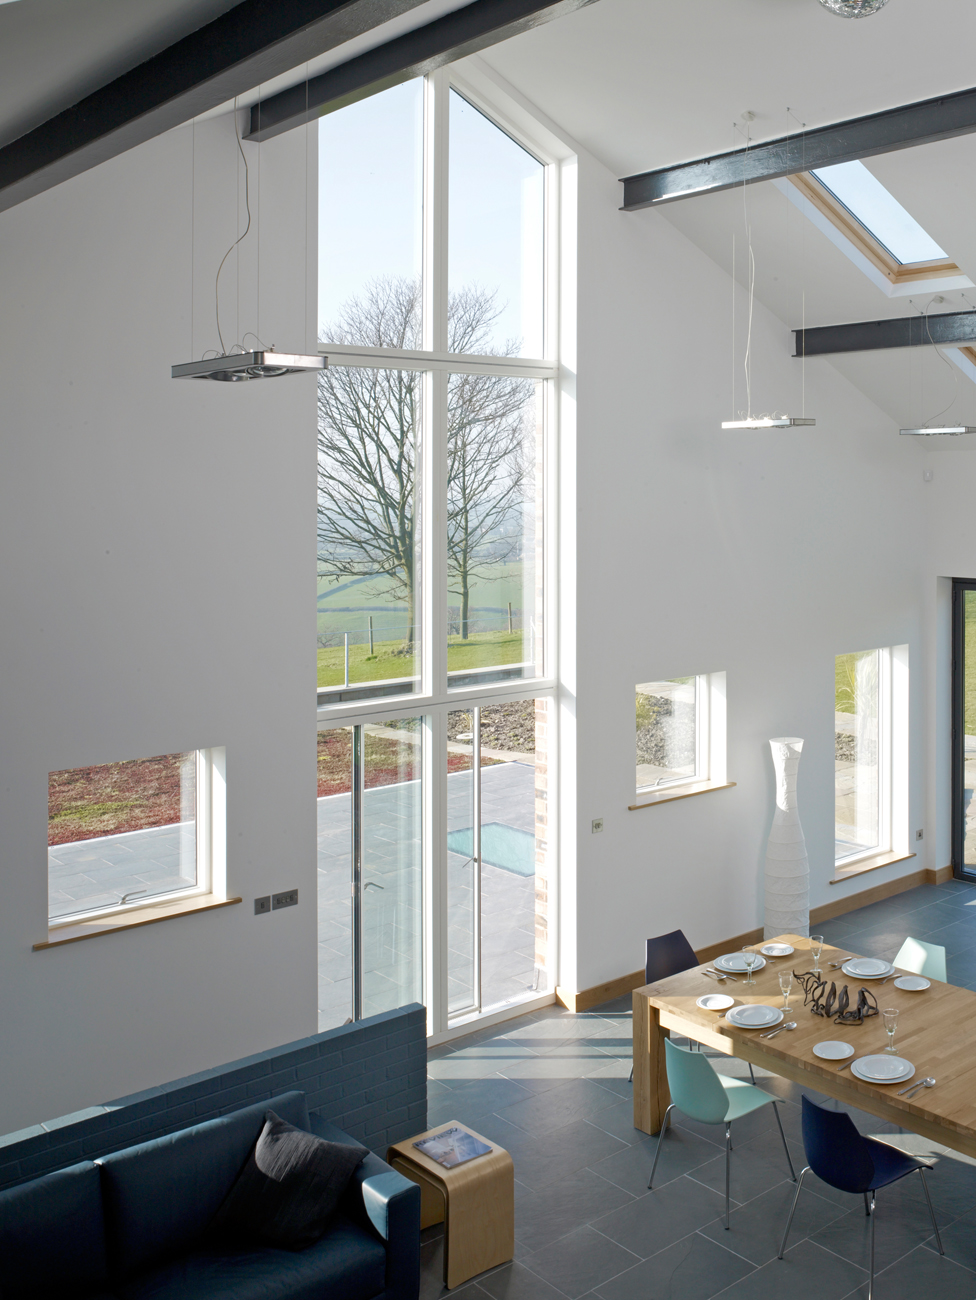 A double-height window is used to draw attention to the stunning view of the Cheshire Plain. The space faces north and is flooded with natural light, without the worry of glare or overheating from direct sun.